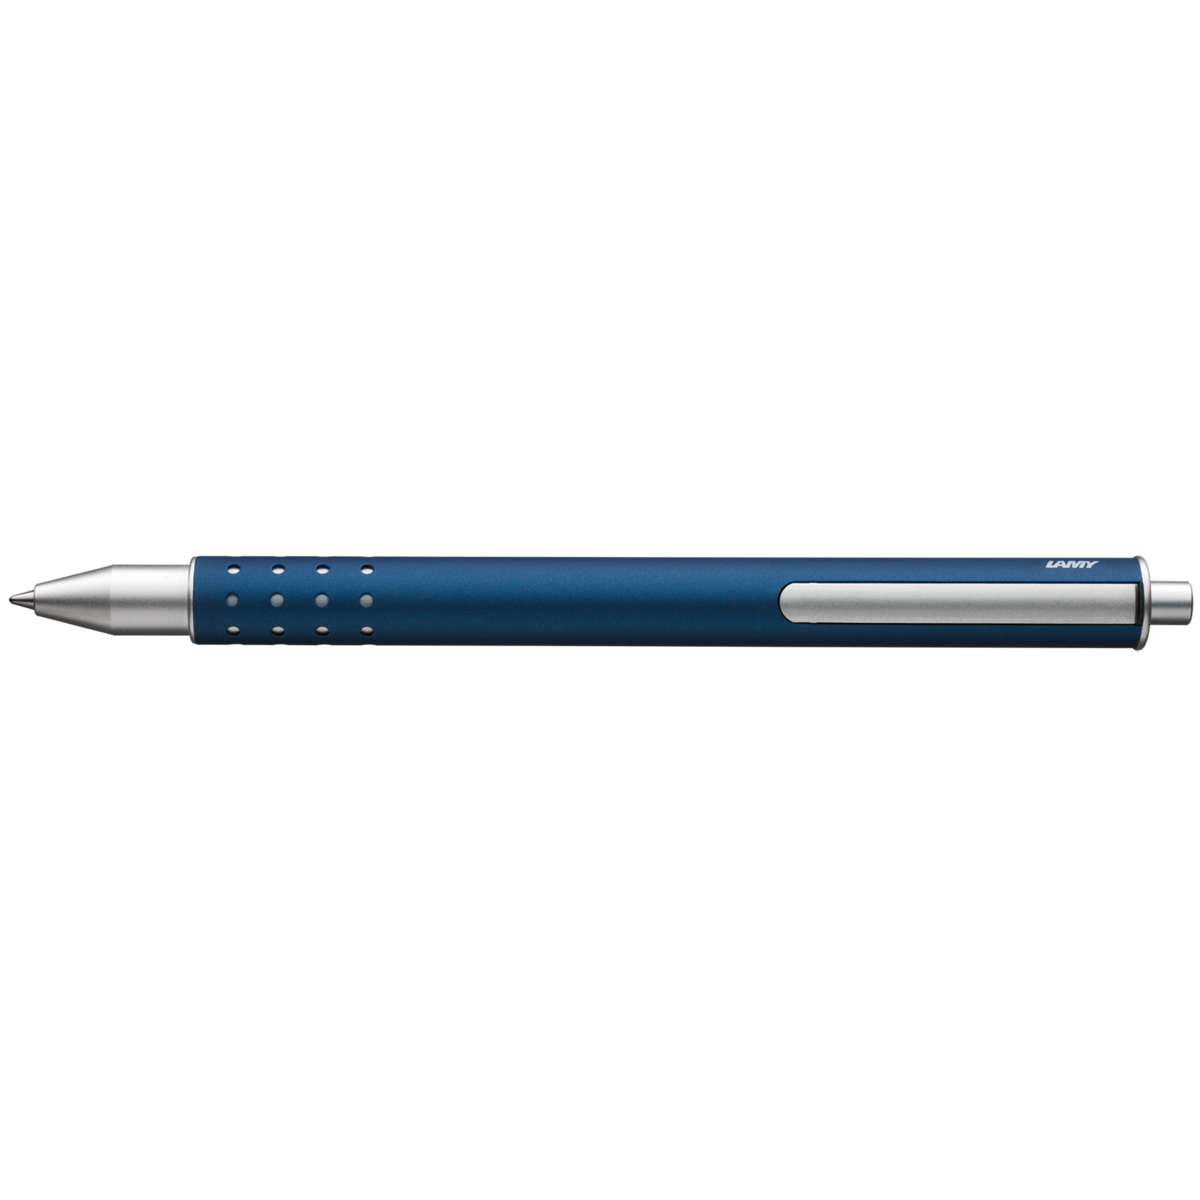 image of lamy pen